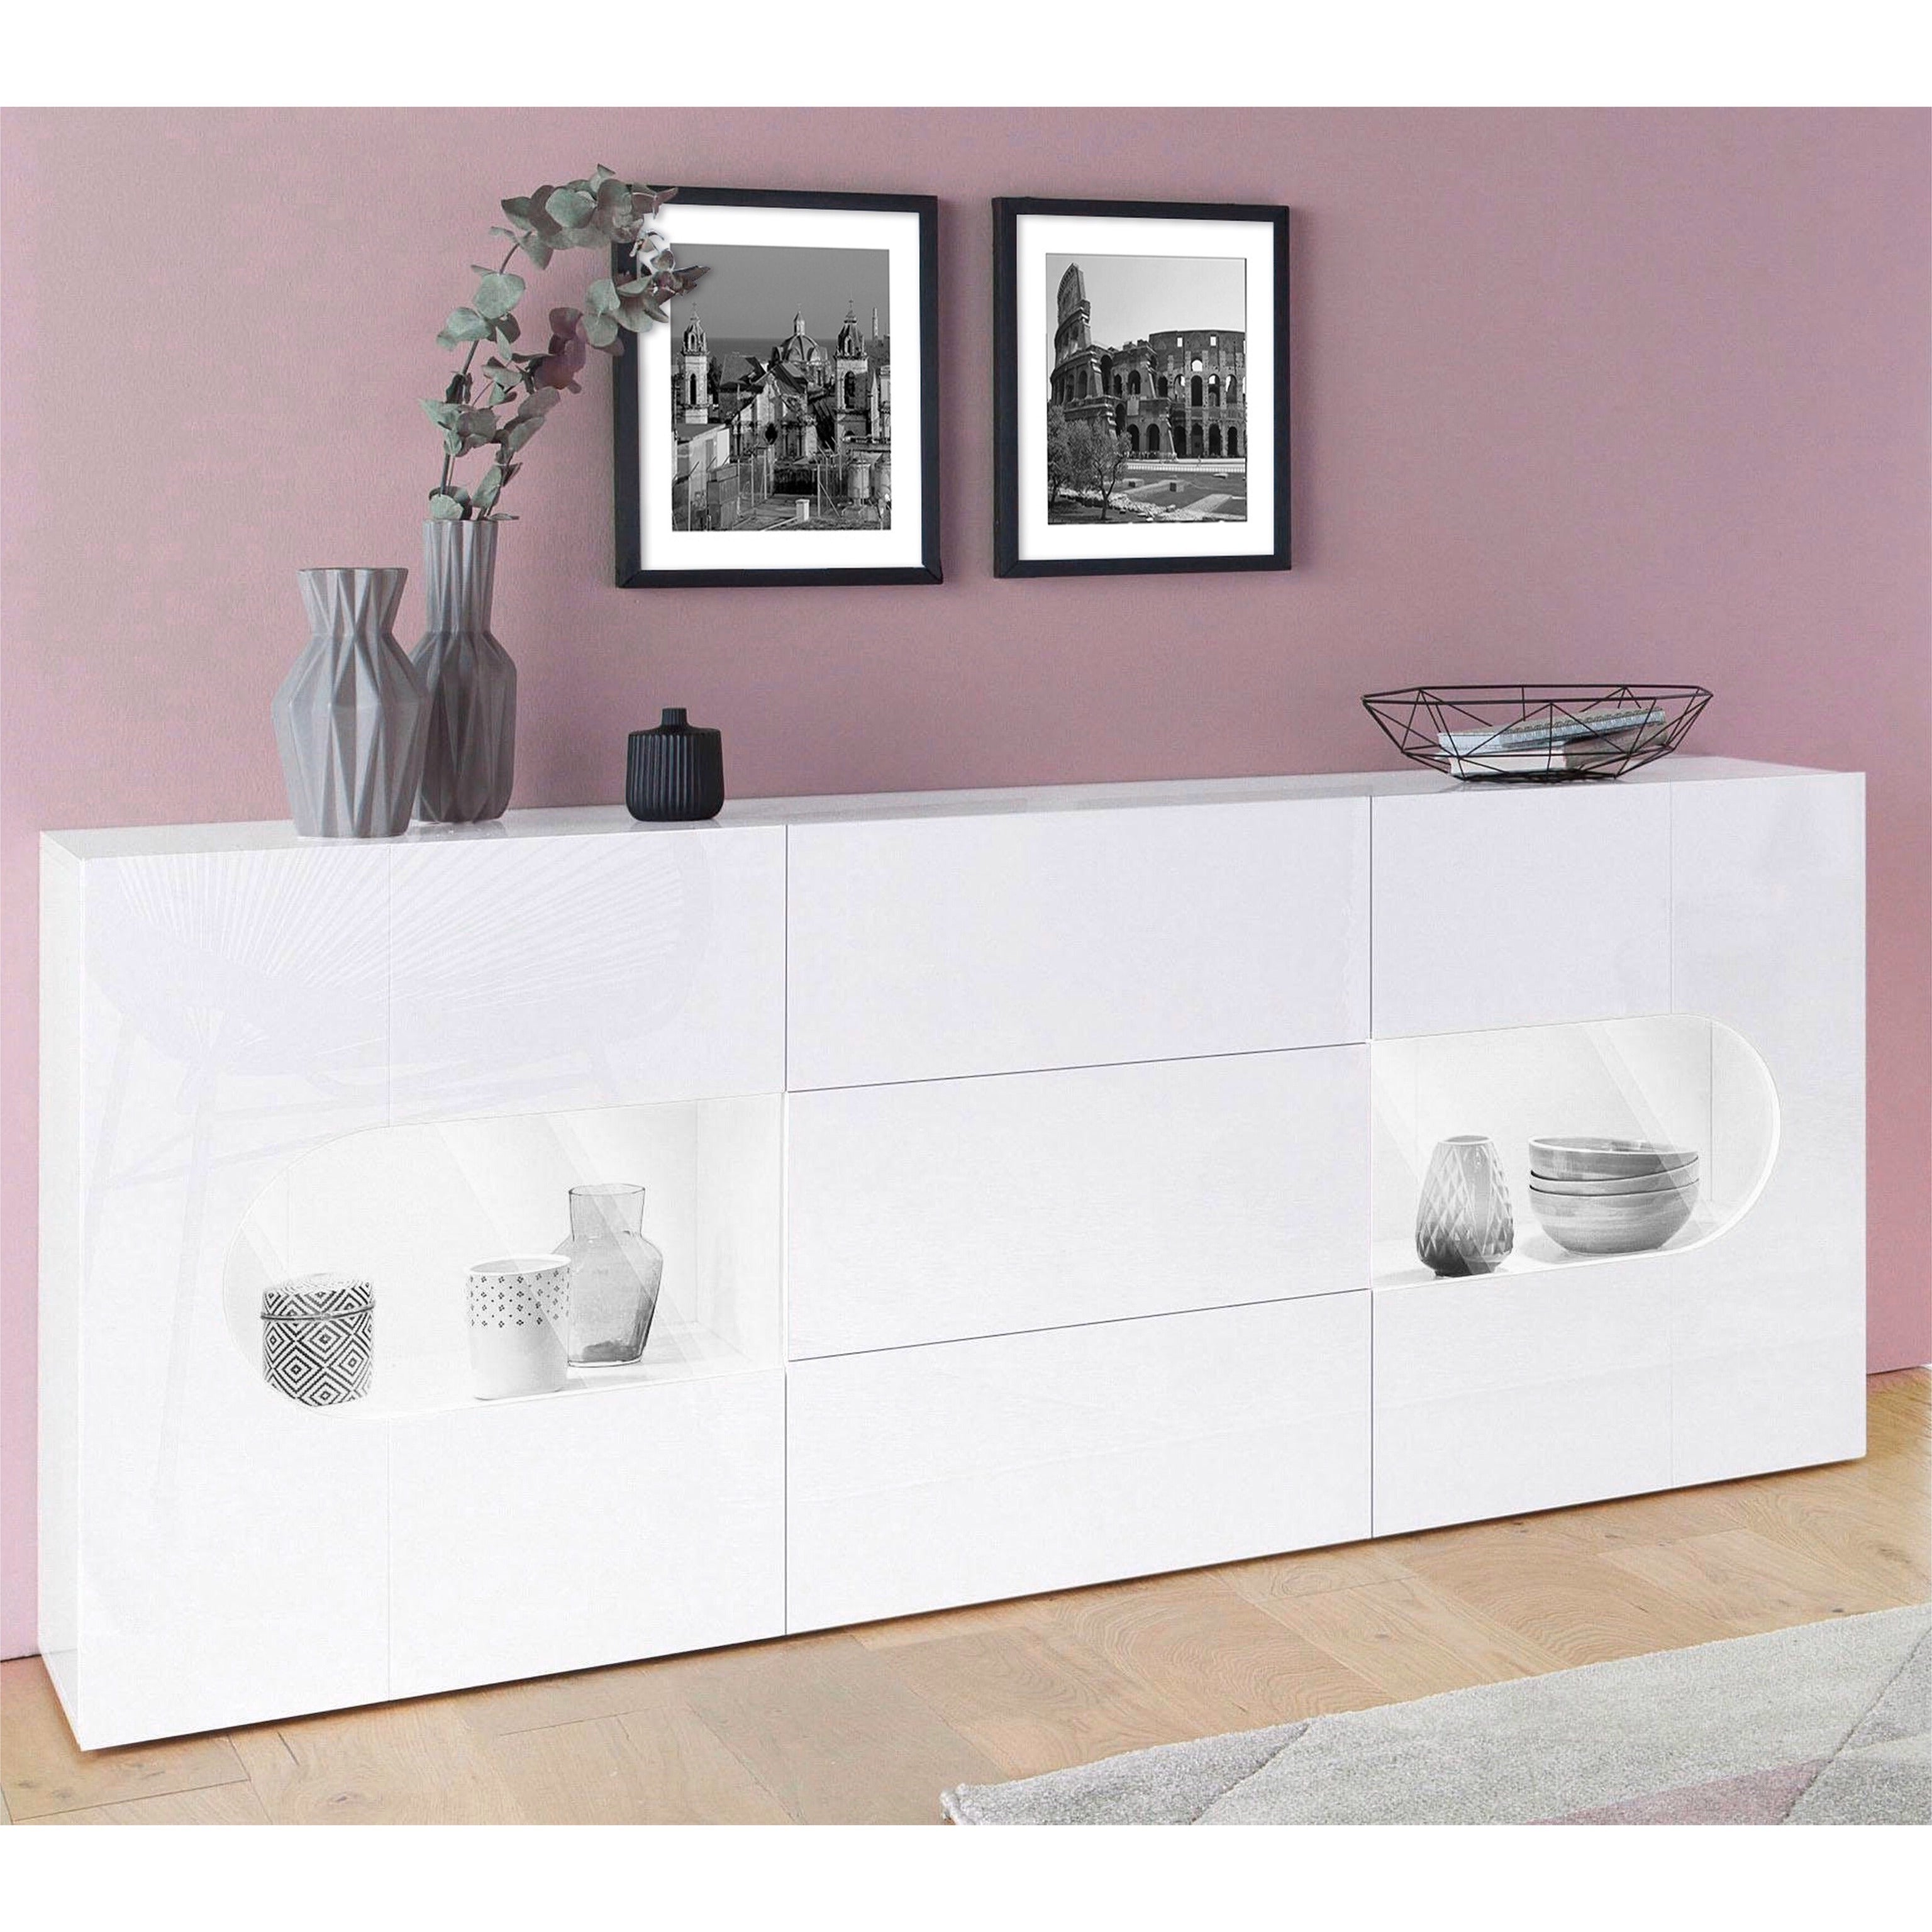 REAL 70-inch White Gloss Sideboard